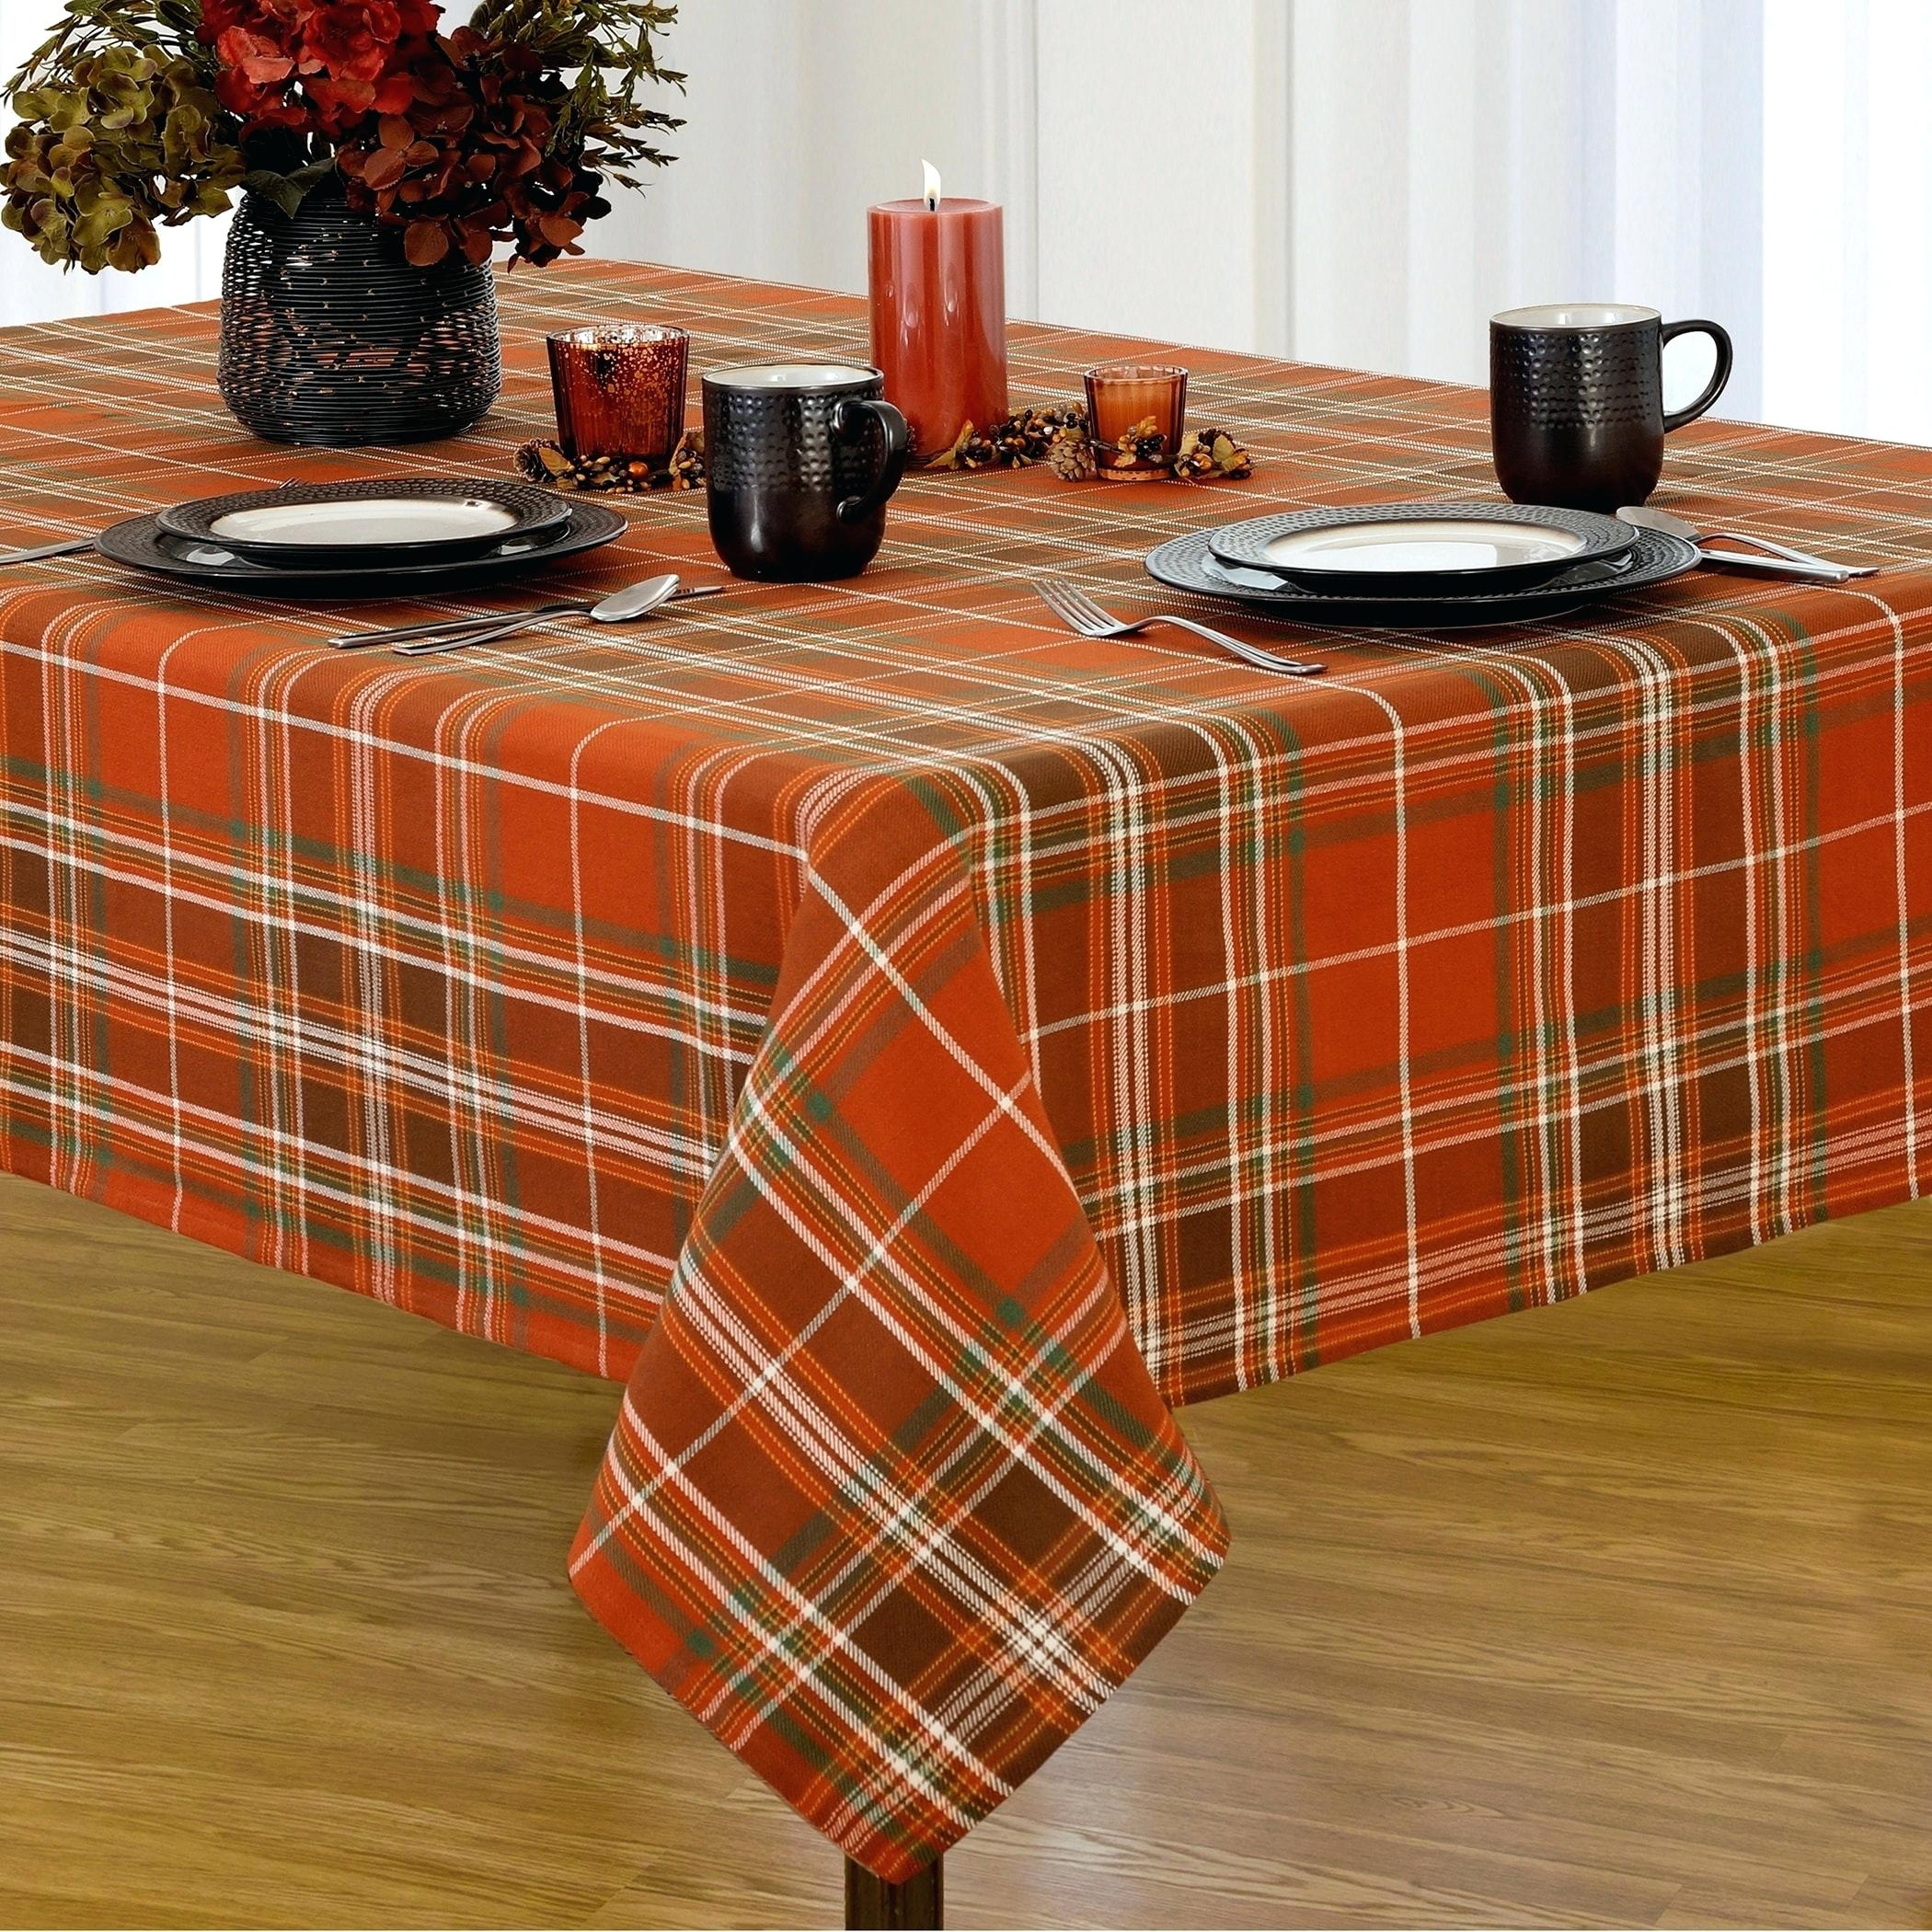 round accent table covers end cloth cover plaid fabric harvest cotton woven tablecloth for small magnussen tables furniture fitted nic kmart mirror the company metal mesh patio